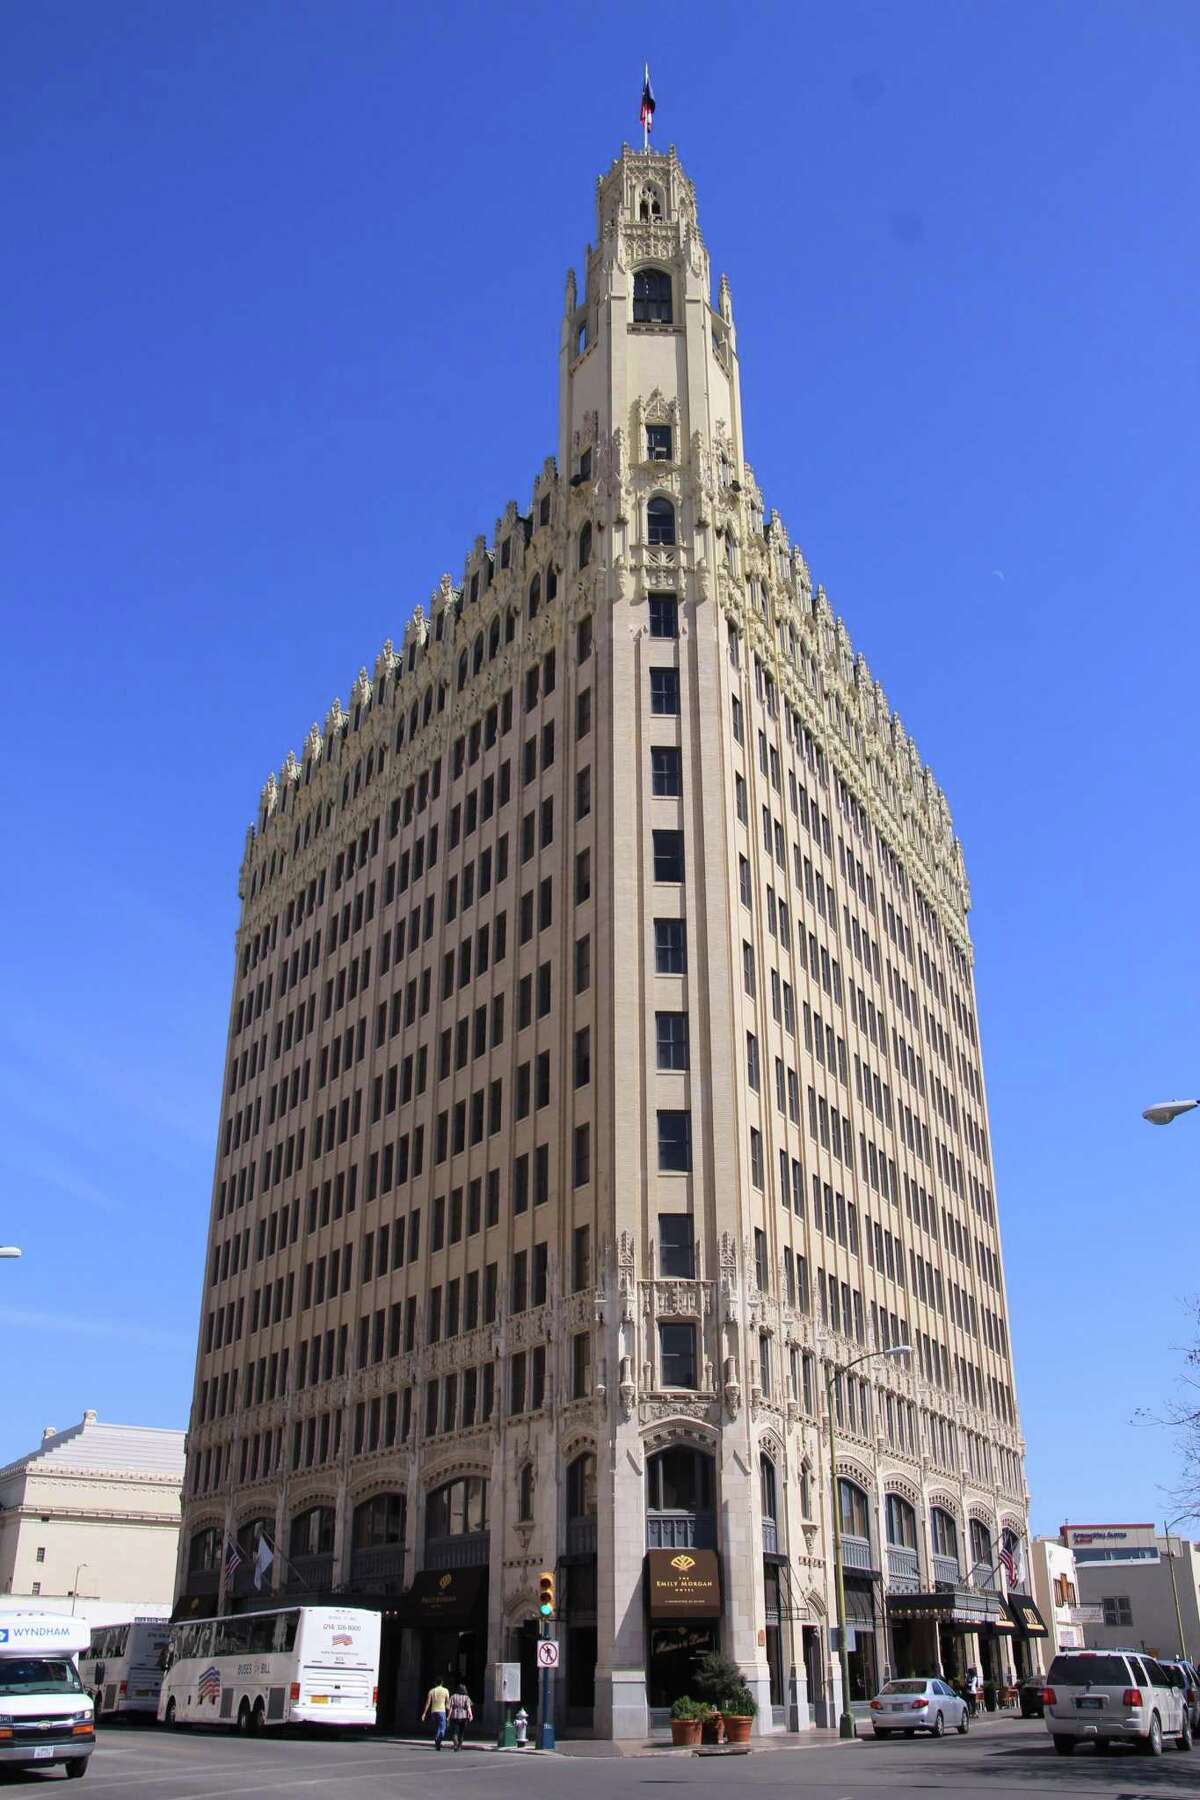 The Tower Life, Emily Morgan (pictured), and Express-News buildings were all constructed during a building boom of the 1920s.